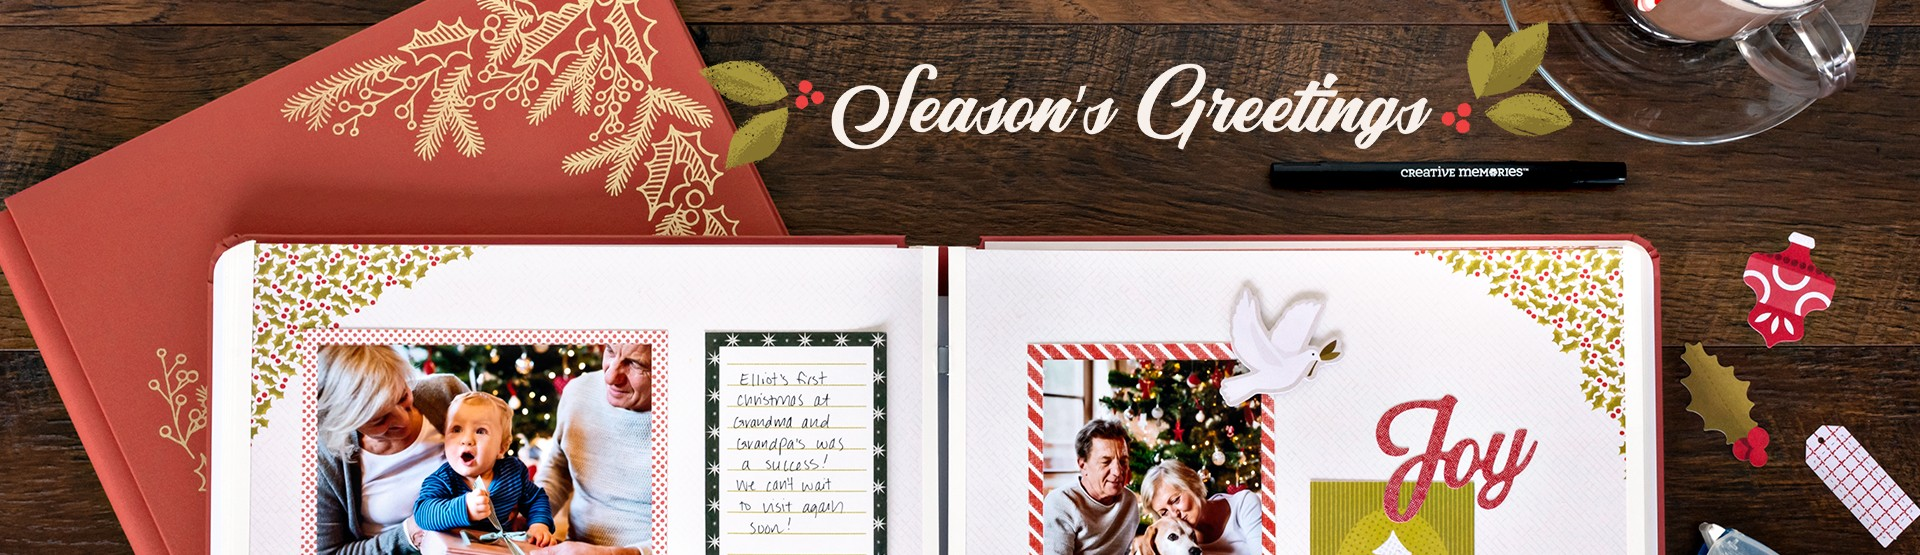 Christmas & Holidays: Season's Greetings